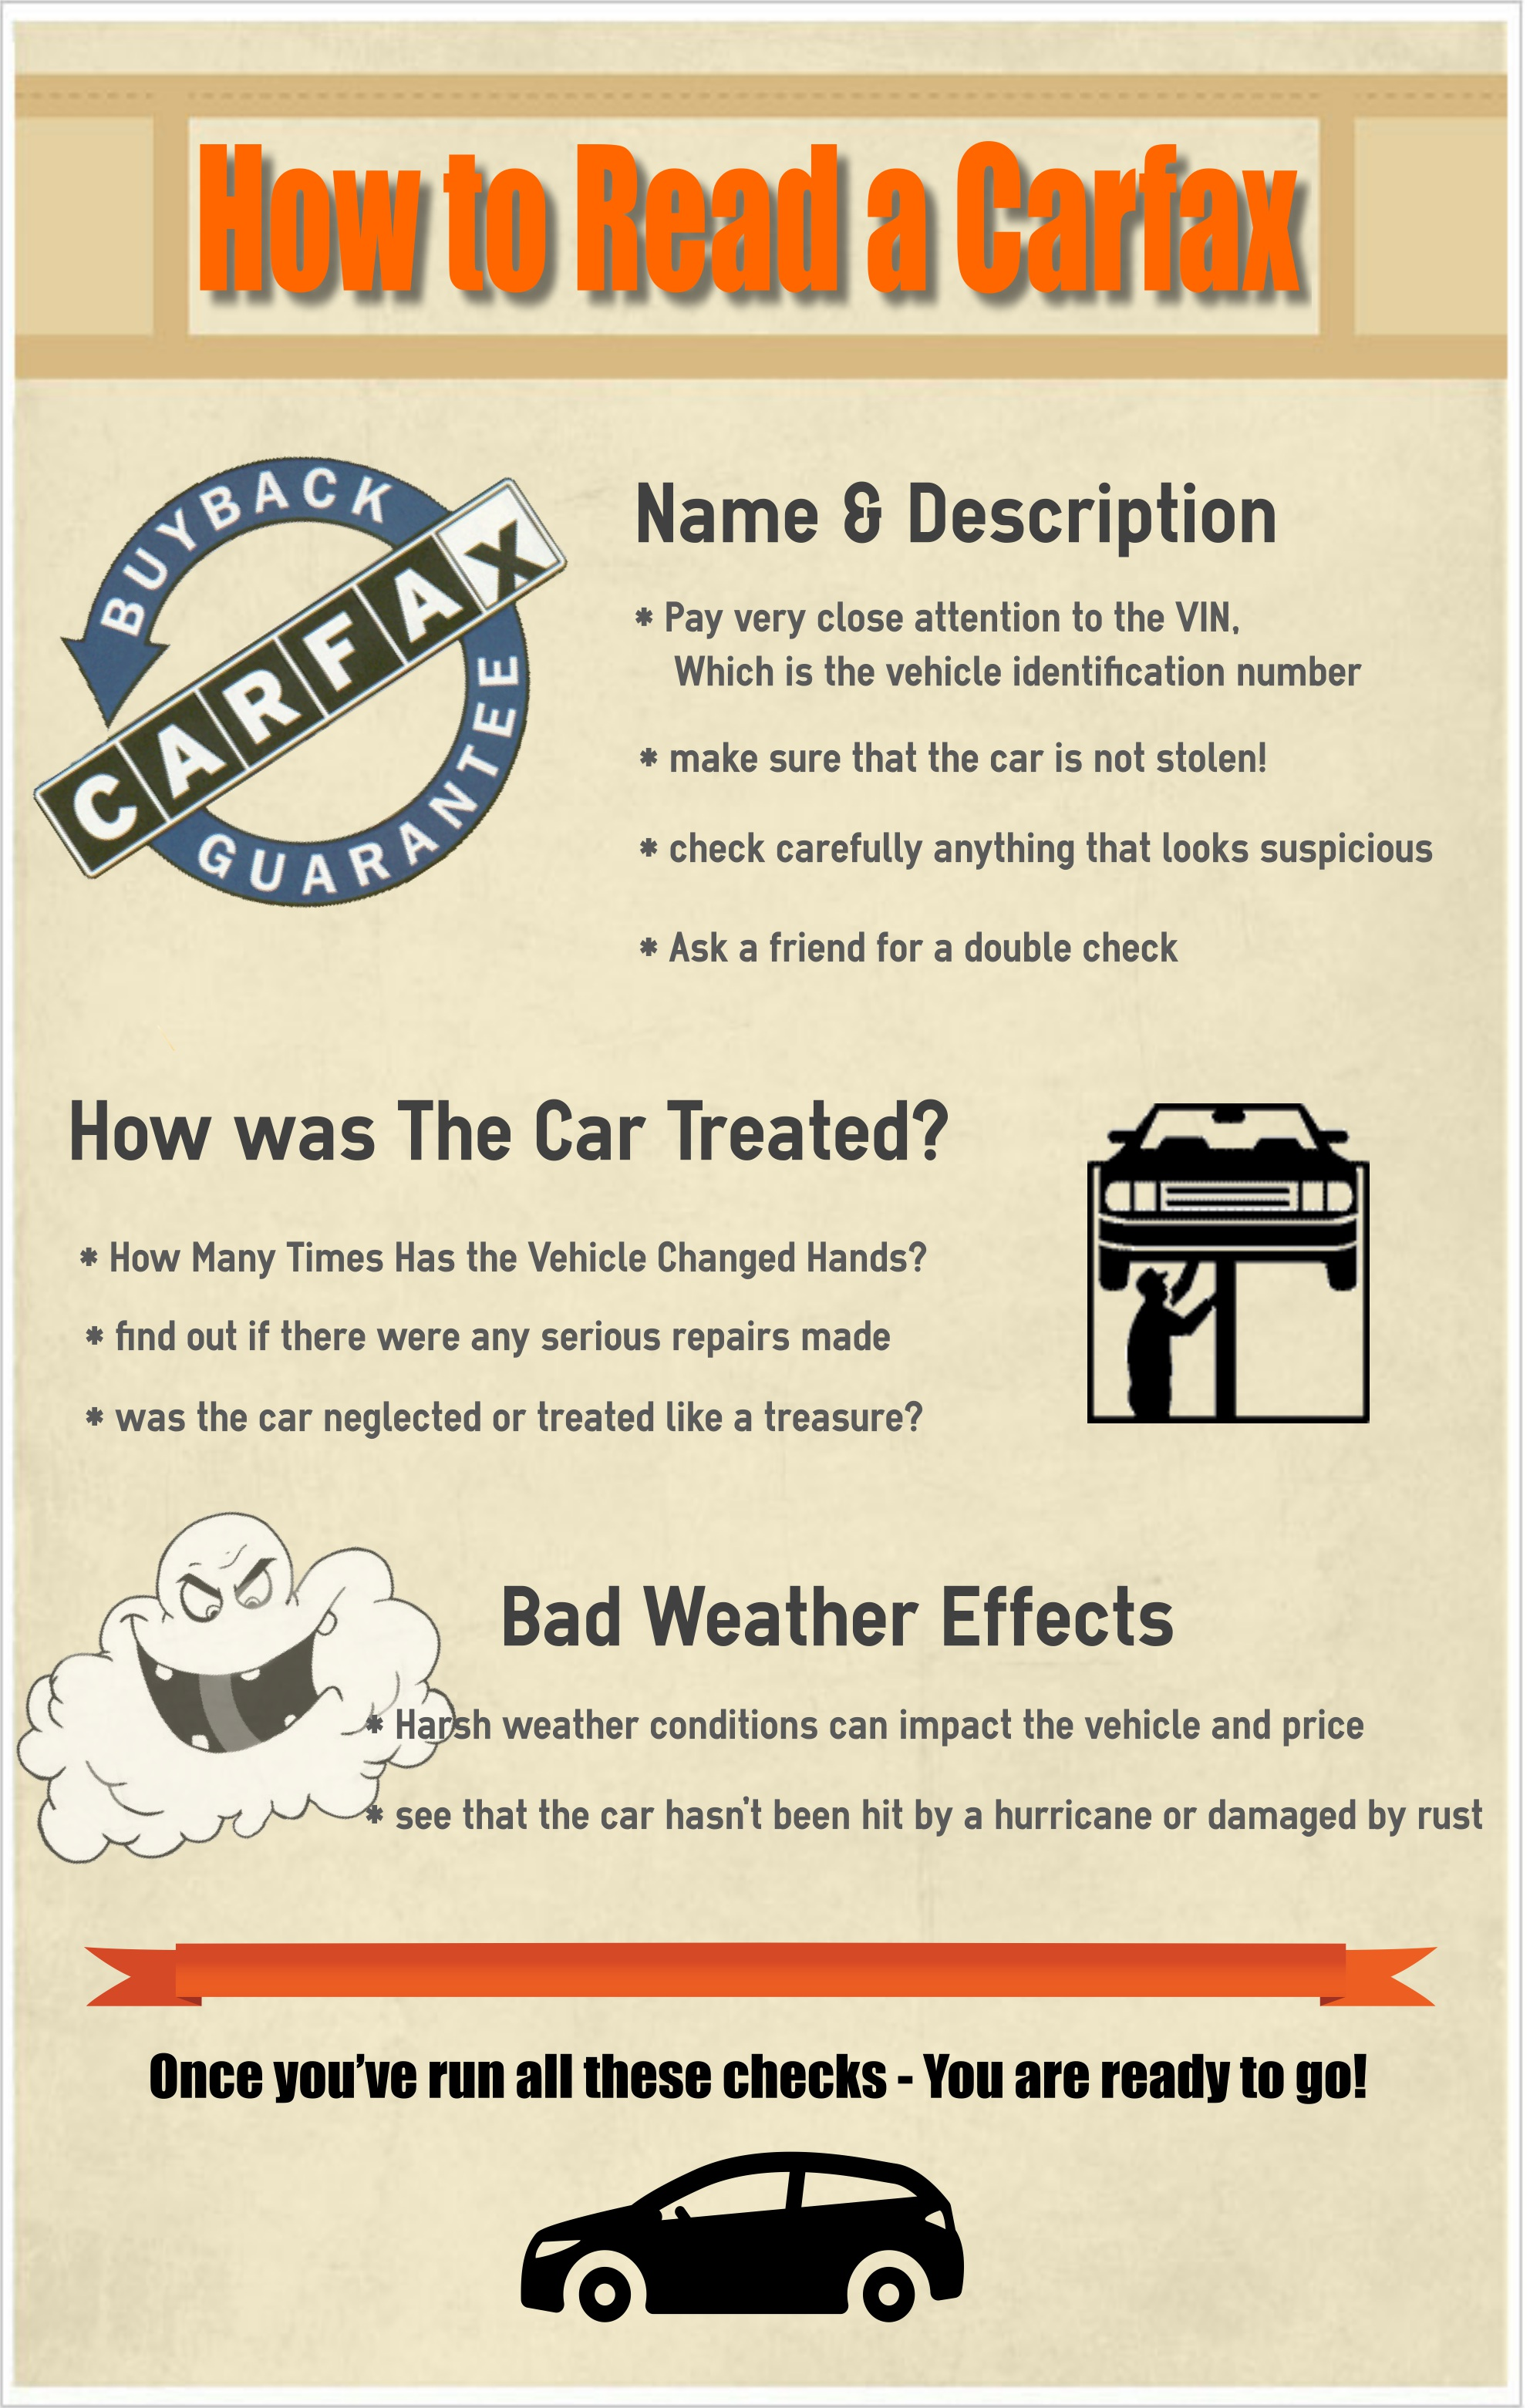 Car Reports Like Carfax Lovely How to Read A Car History Report